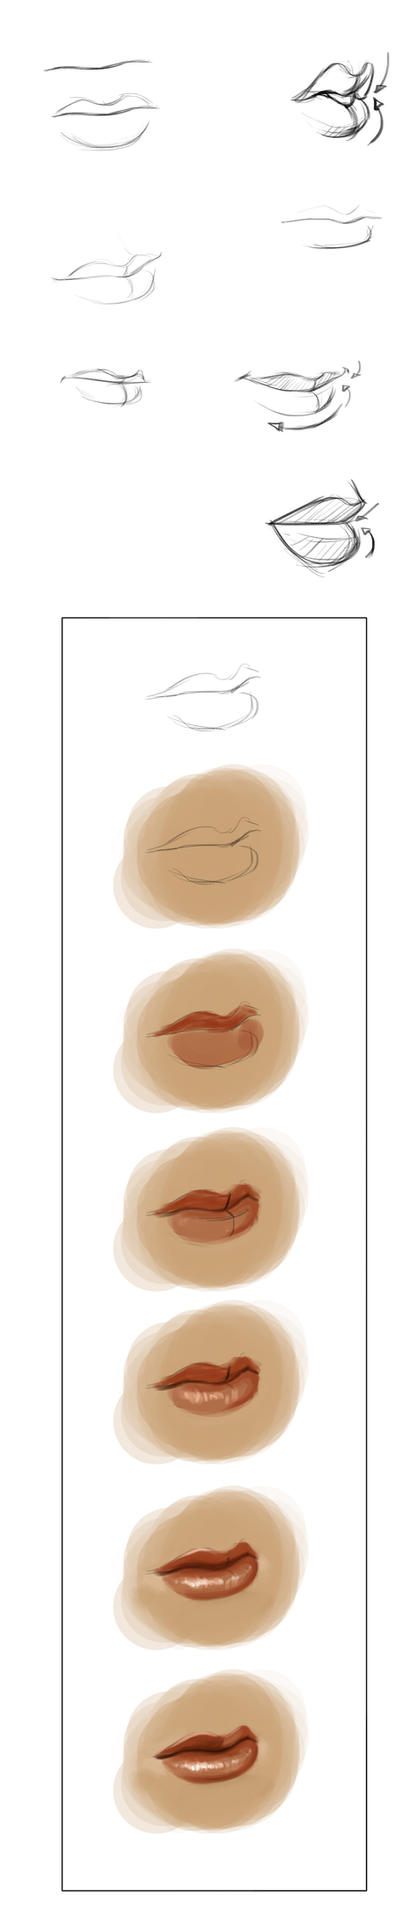 lips mini tutorial by iara-art